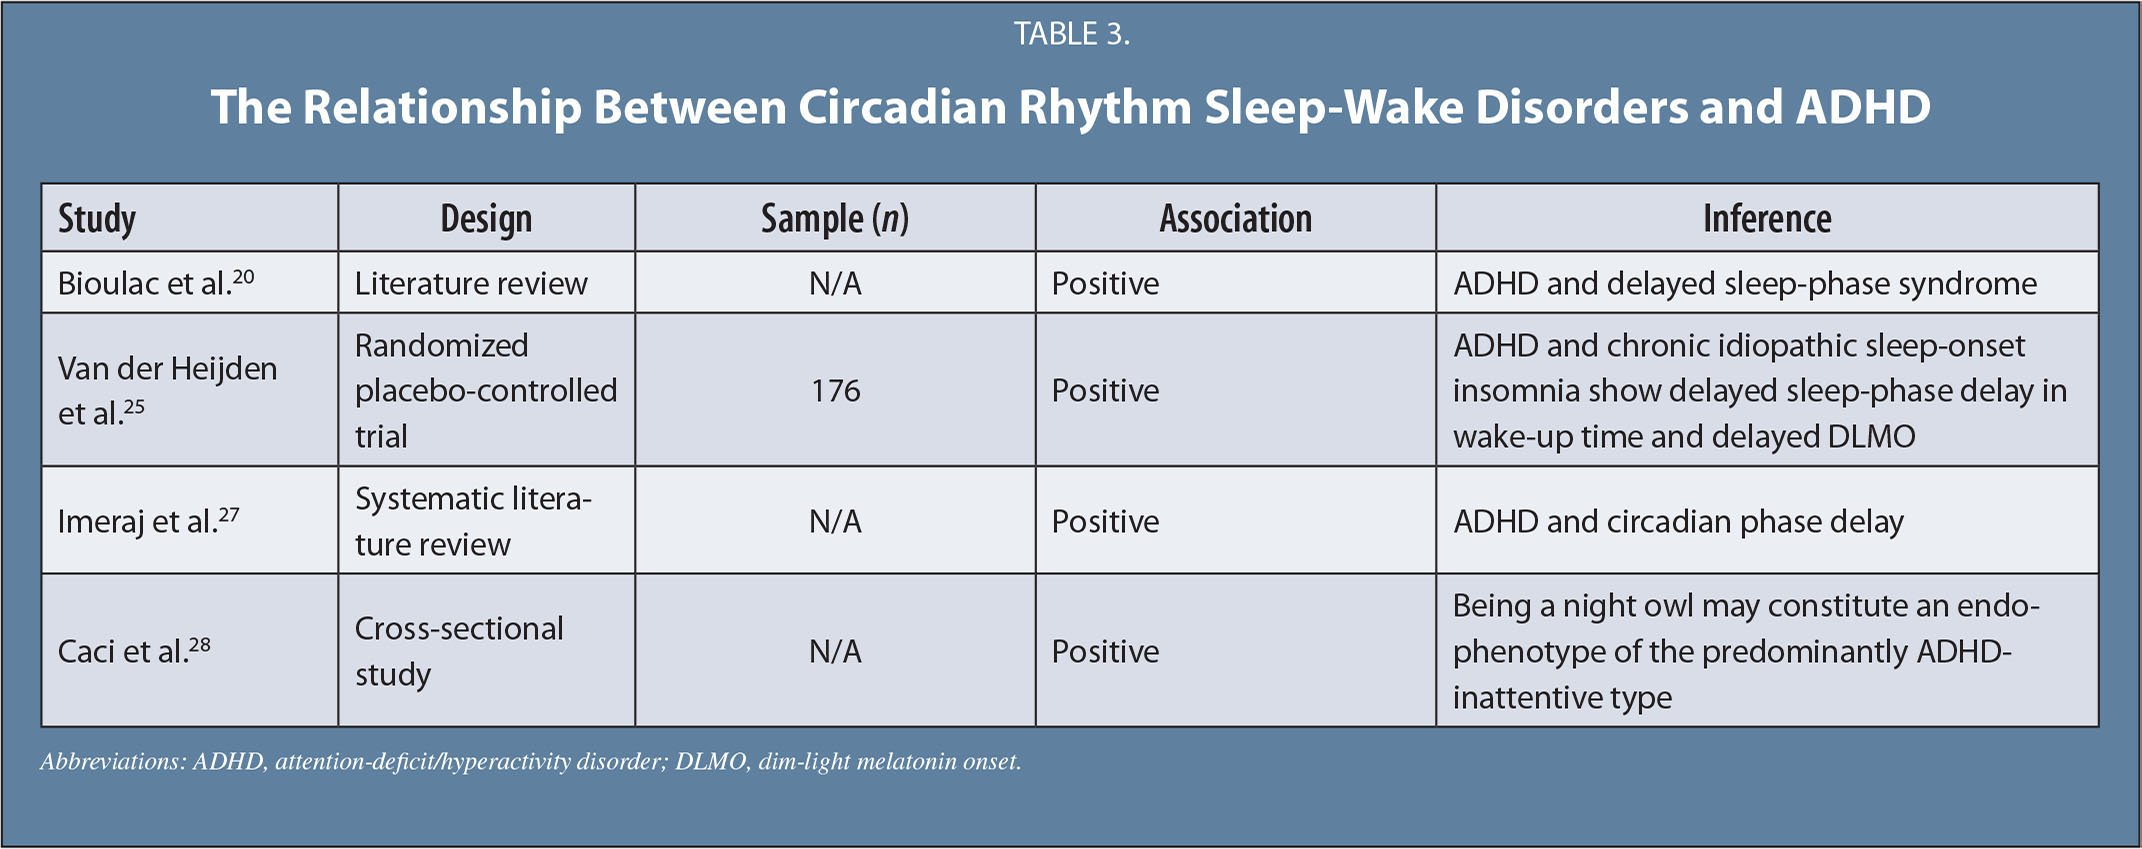 The Relationship Between Circadian Rhythm Sleep-Wake Disorders and ADHD